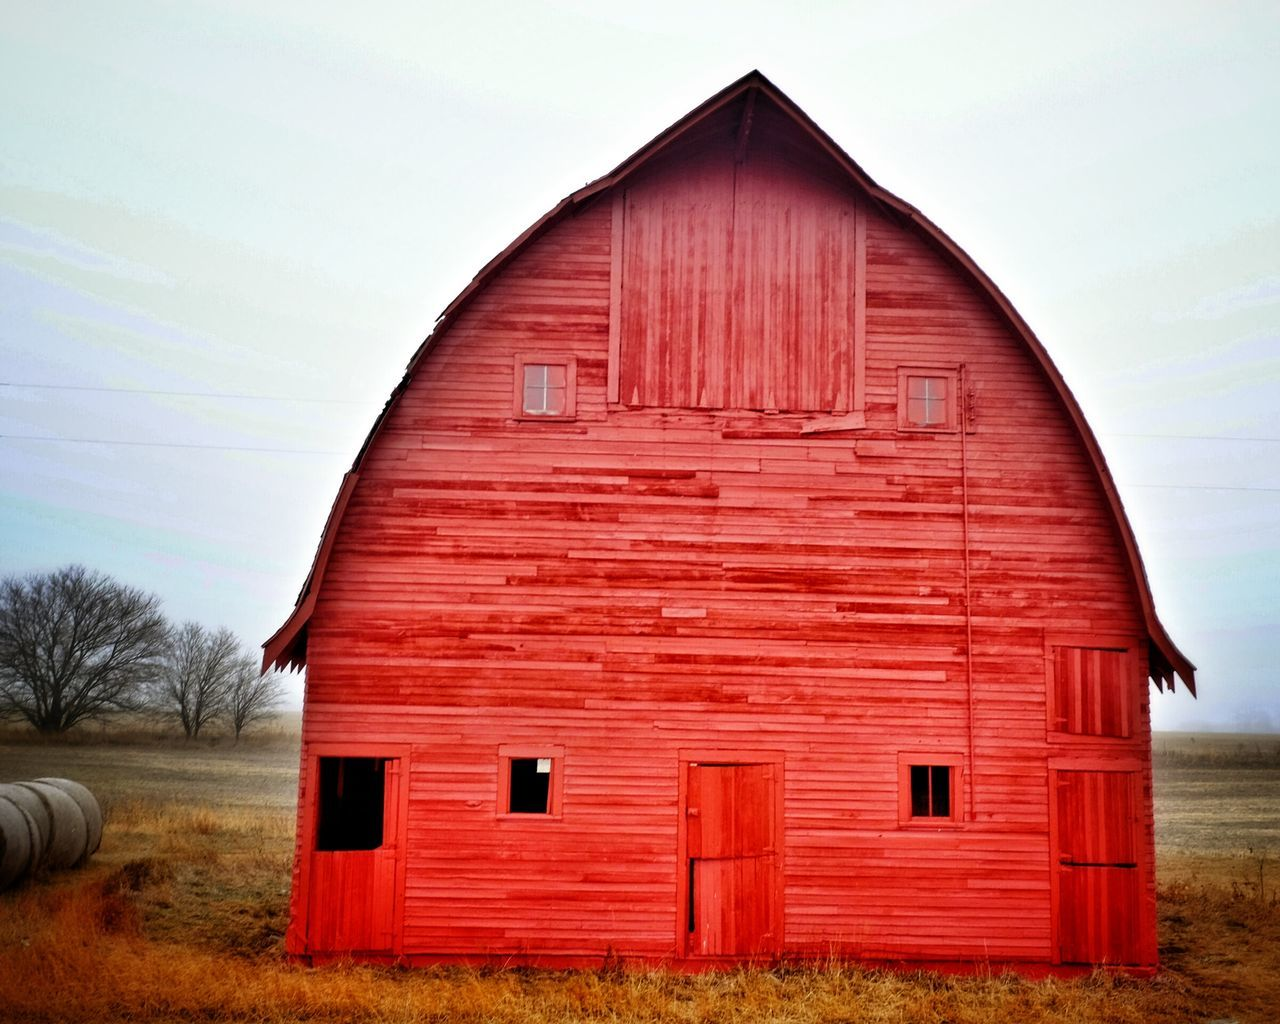 """If you've ever driven through a rural area, it's likely that you've seen the red barns that speckle the farming landscape. There are several theories as to why barns are painted red. Centuries ago, European farmers would seal the wood on their barns with an oil, often linseed oil -- a tawny-colored oil derived from the seed of the flax plant. They would paint their barns with a linseed-oil mixture, often consisting of additions such as milk and lime. The combination produced a long-lasting paint that dried and hardened quickly. (Today, linseed oil is sold in most home-improvement stores as a wood sealant). Now, where does the red come from? In historically accurate terms, """"barn red"""" is not the bright,fire-enginered that we often see today, but more of a burnt-orange red. As to how the oil mixture became traditionally red, there are two predominant theories: Wealthy farmers addedbloodfrom a recent slaughter to the oil mixture. As the paint dried, it turned from a bright red to a darker, burnt red.Farmers addedferrous oxide, otherwise known asrust, to the oil mixture. Rust was plentiful on farms and is a poison to many fungi, including mold and moss, which were known to grown on barns. These fungi would trap moisture in the wood, increasing decay. Regardless of how the farmer tinted his paint, having a red barn became a fashionable thing. They were a sharp contrast to the traditional white farmhouse. As European settlers crossed over to America, they brought with them the tradition of red barns. In the mid to late 1800s, as paints began to be produced with chemical pigments, red paint was the most inexpensive to buy. Red was the color of favor until whitewash became cheaper, at which point white barns began to spring up. Old Barns Rural America Farm Life Check This Out Getty Images Barn My Neighborhood EyeEm Best Shots Portrait Of America Farmlife EyeEm Bestsellers"""